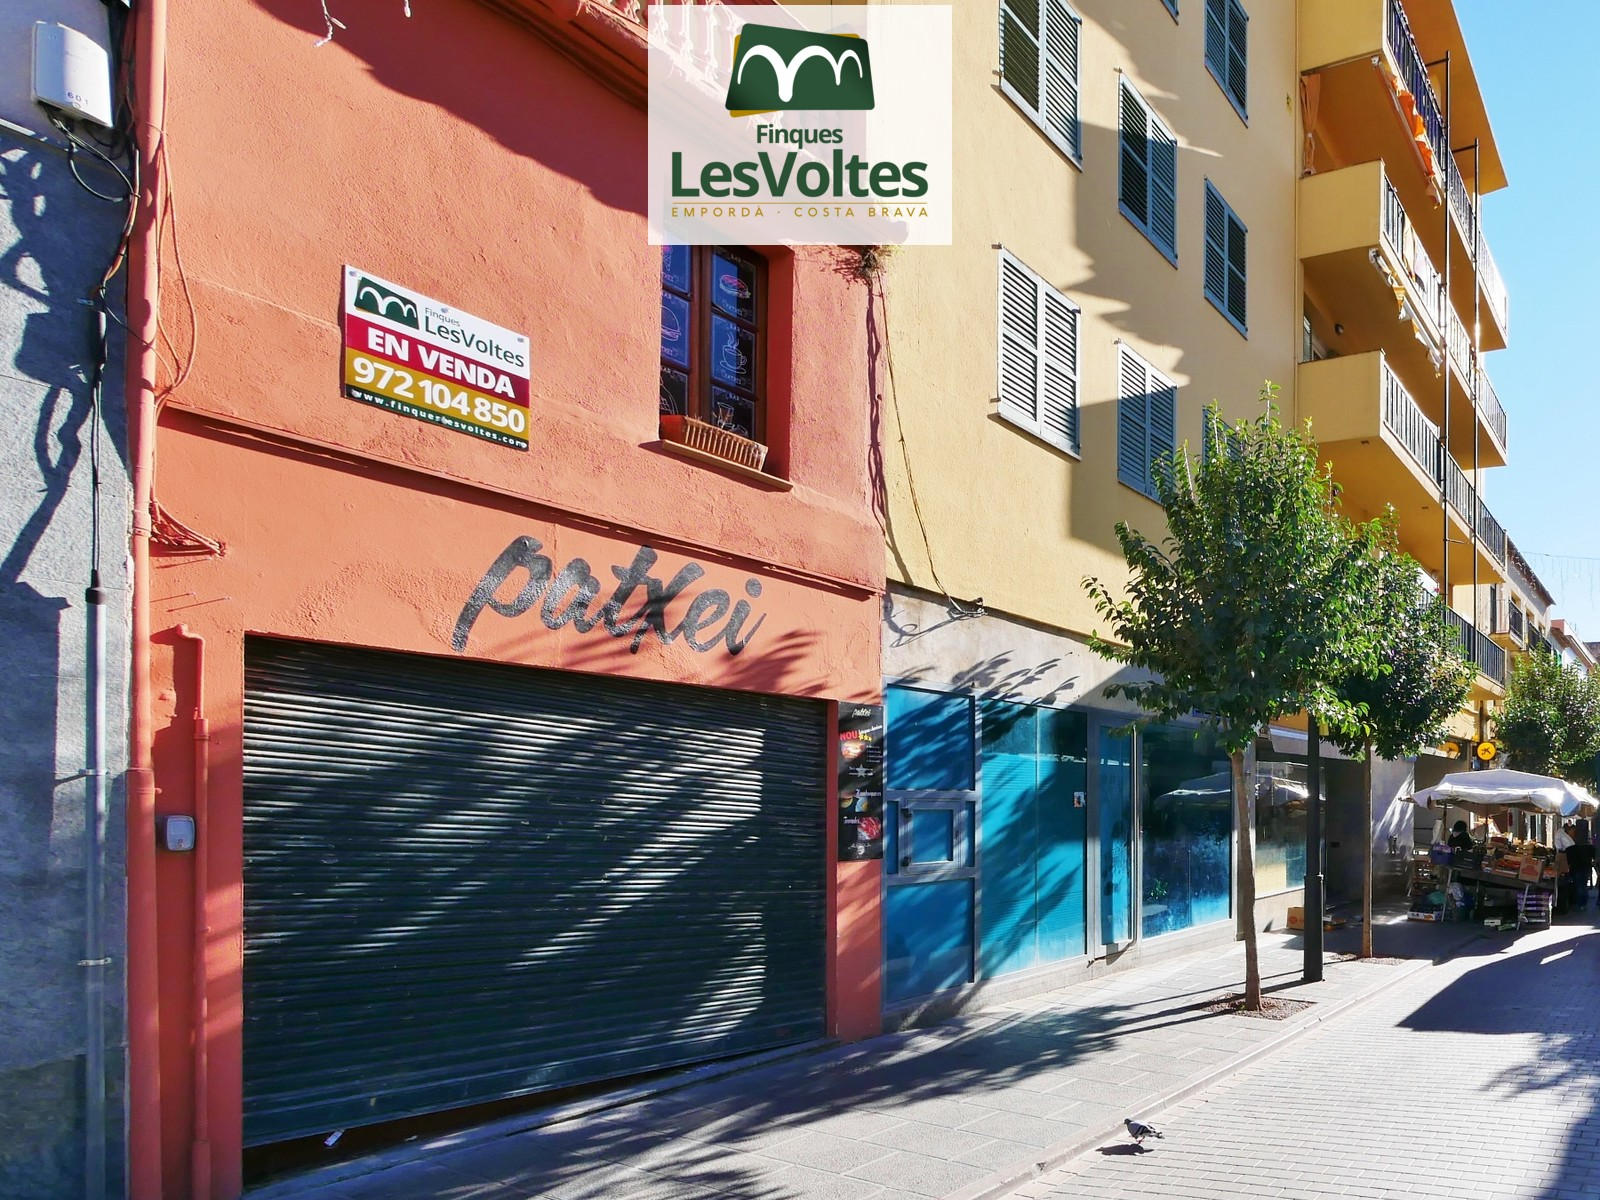 UNIQUE OPPORTUNITY! HOUSE FOR SALE 170 M2 IN THE FULL PEDESTRIAN CENTER OF PALAFRUGELL WITH MANY POSSIBILITIES